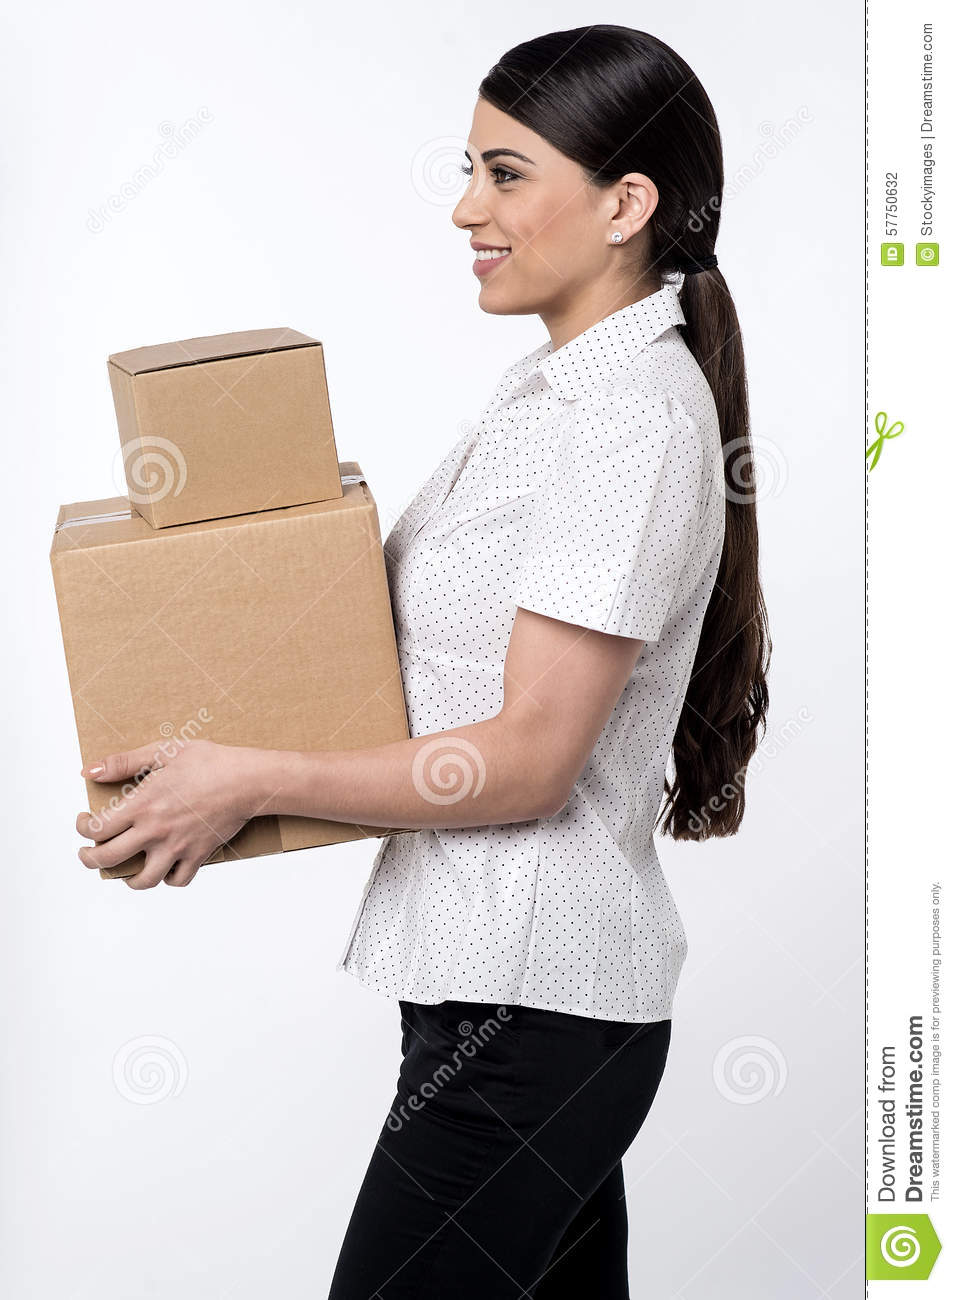 Here is your parcels is sir !